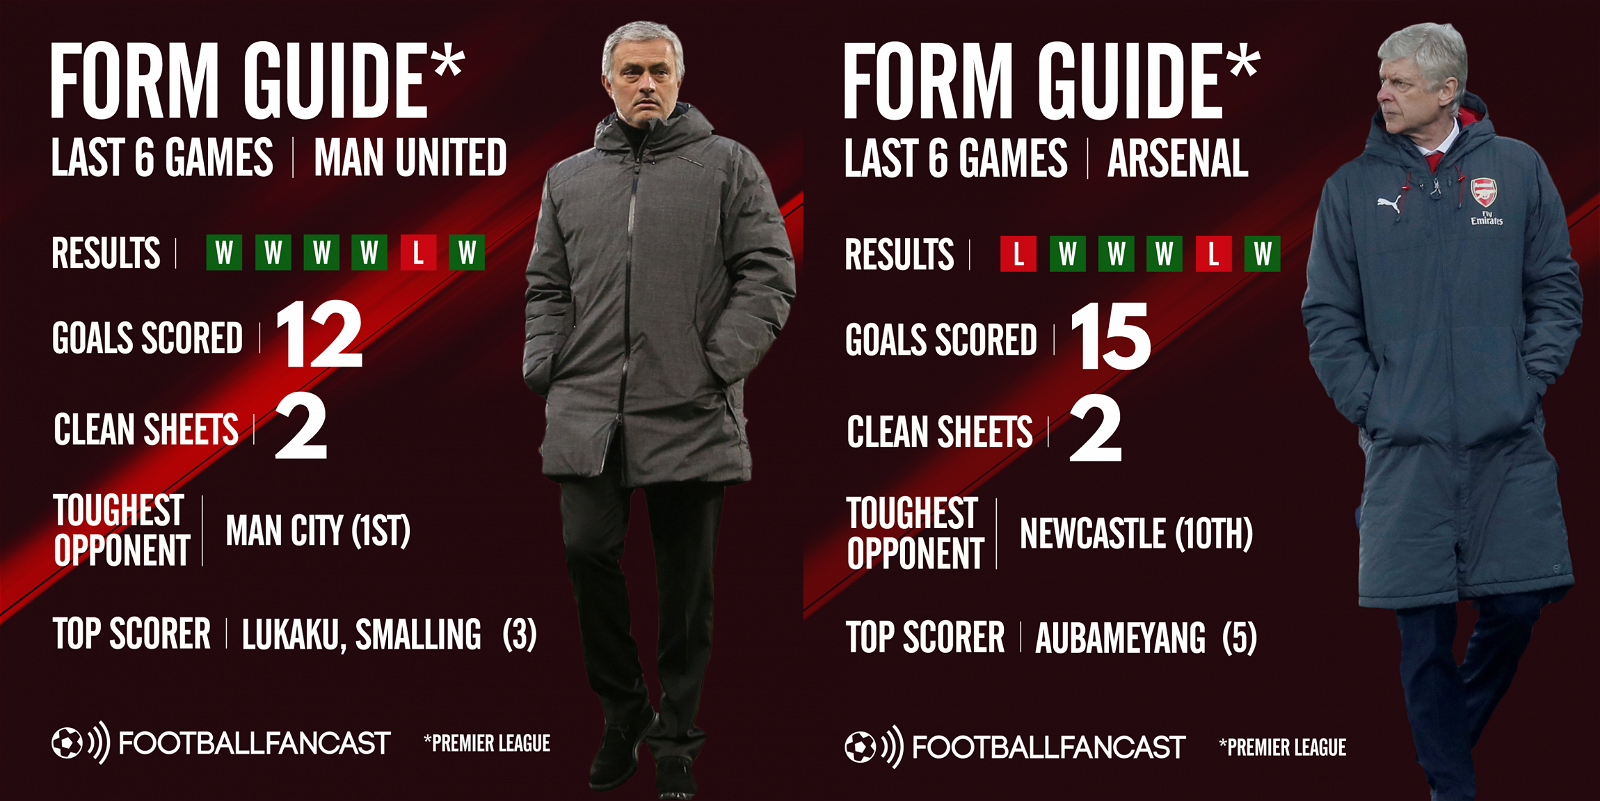 Man United vs Arsenal - Form Guide